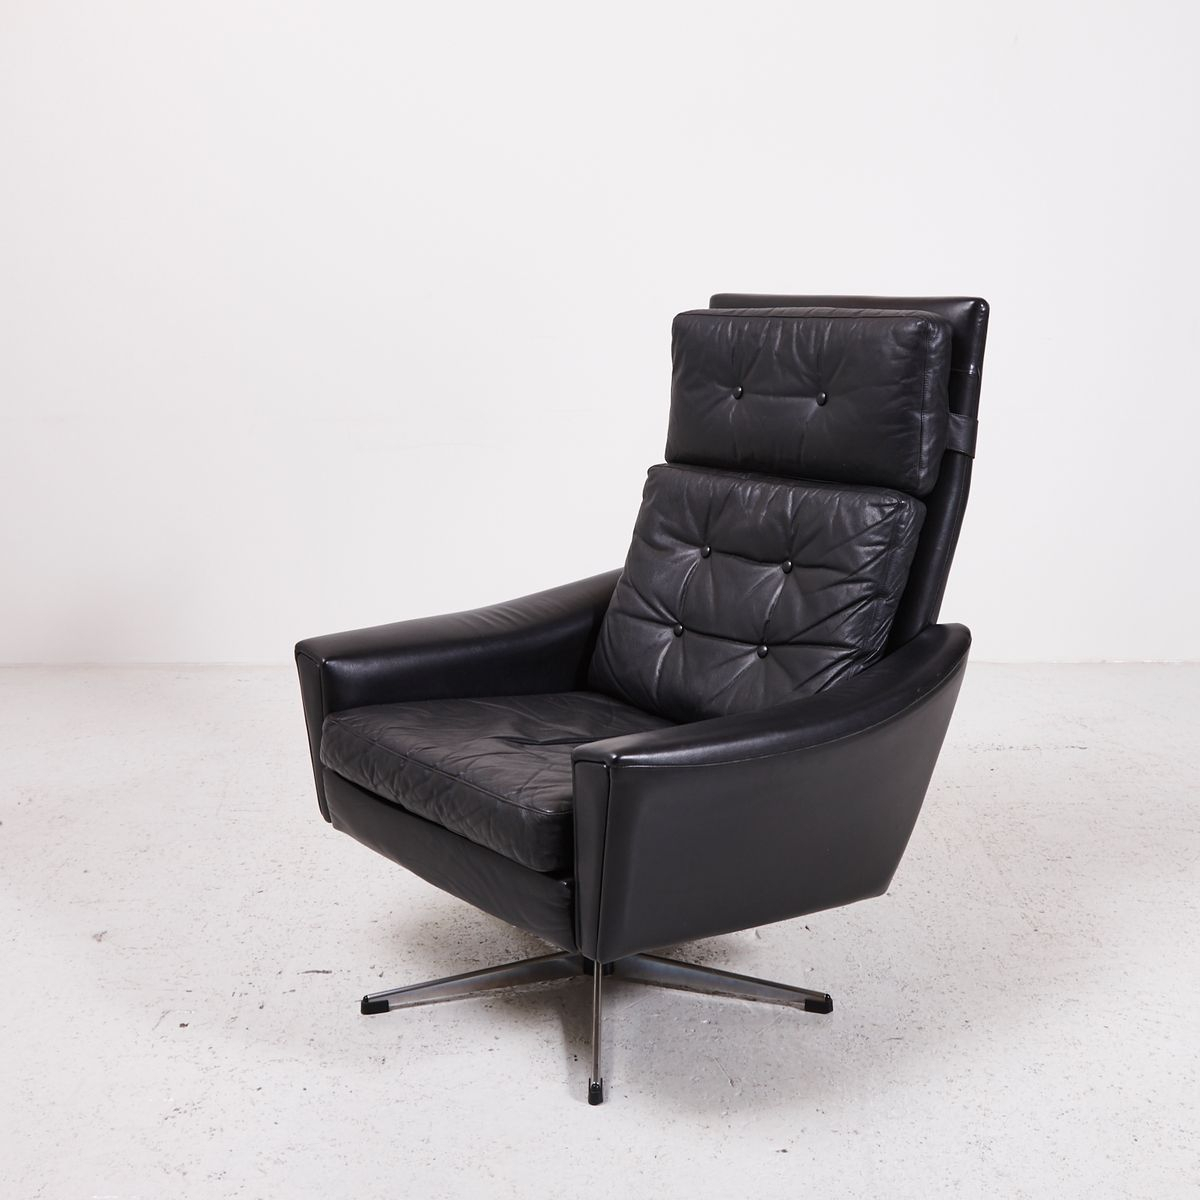 Black Leather Swivel Chair With Star Shaped Stand, 1970S For Sale At For Leather Black Swivel Chairs (Image 3 of 20)